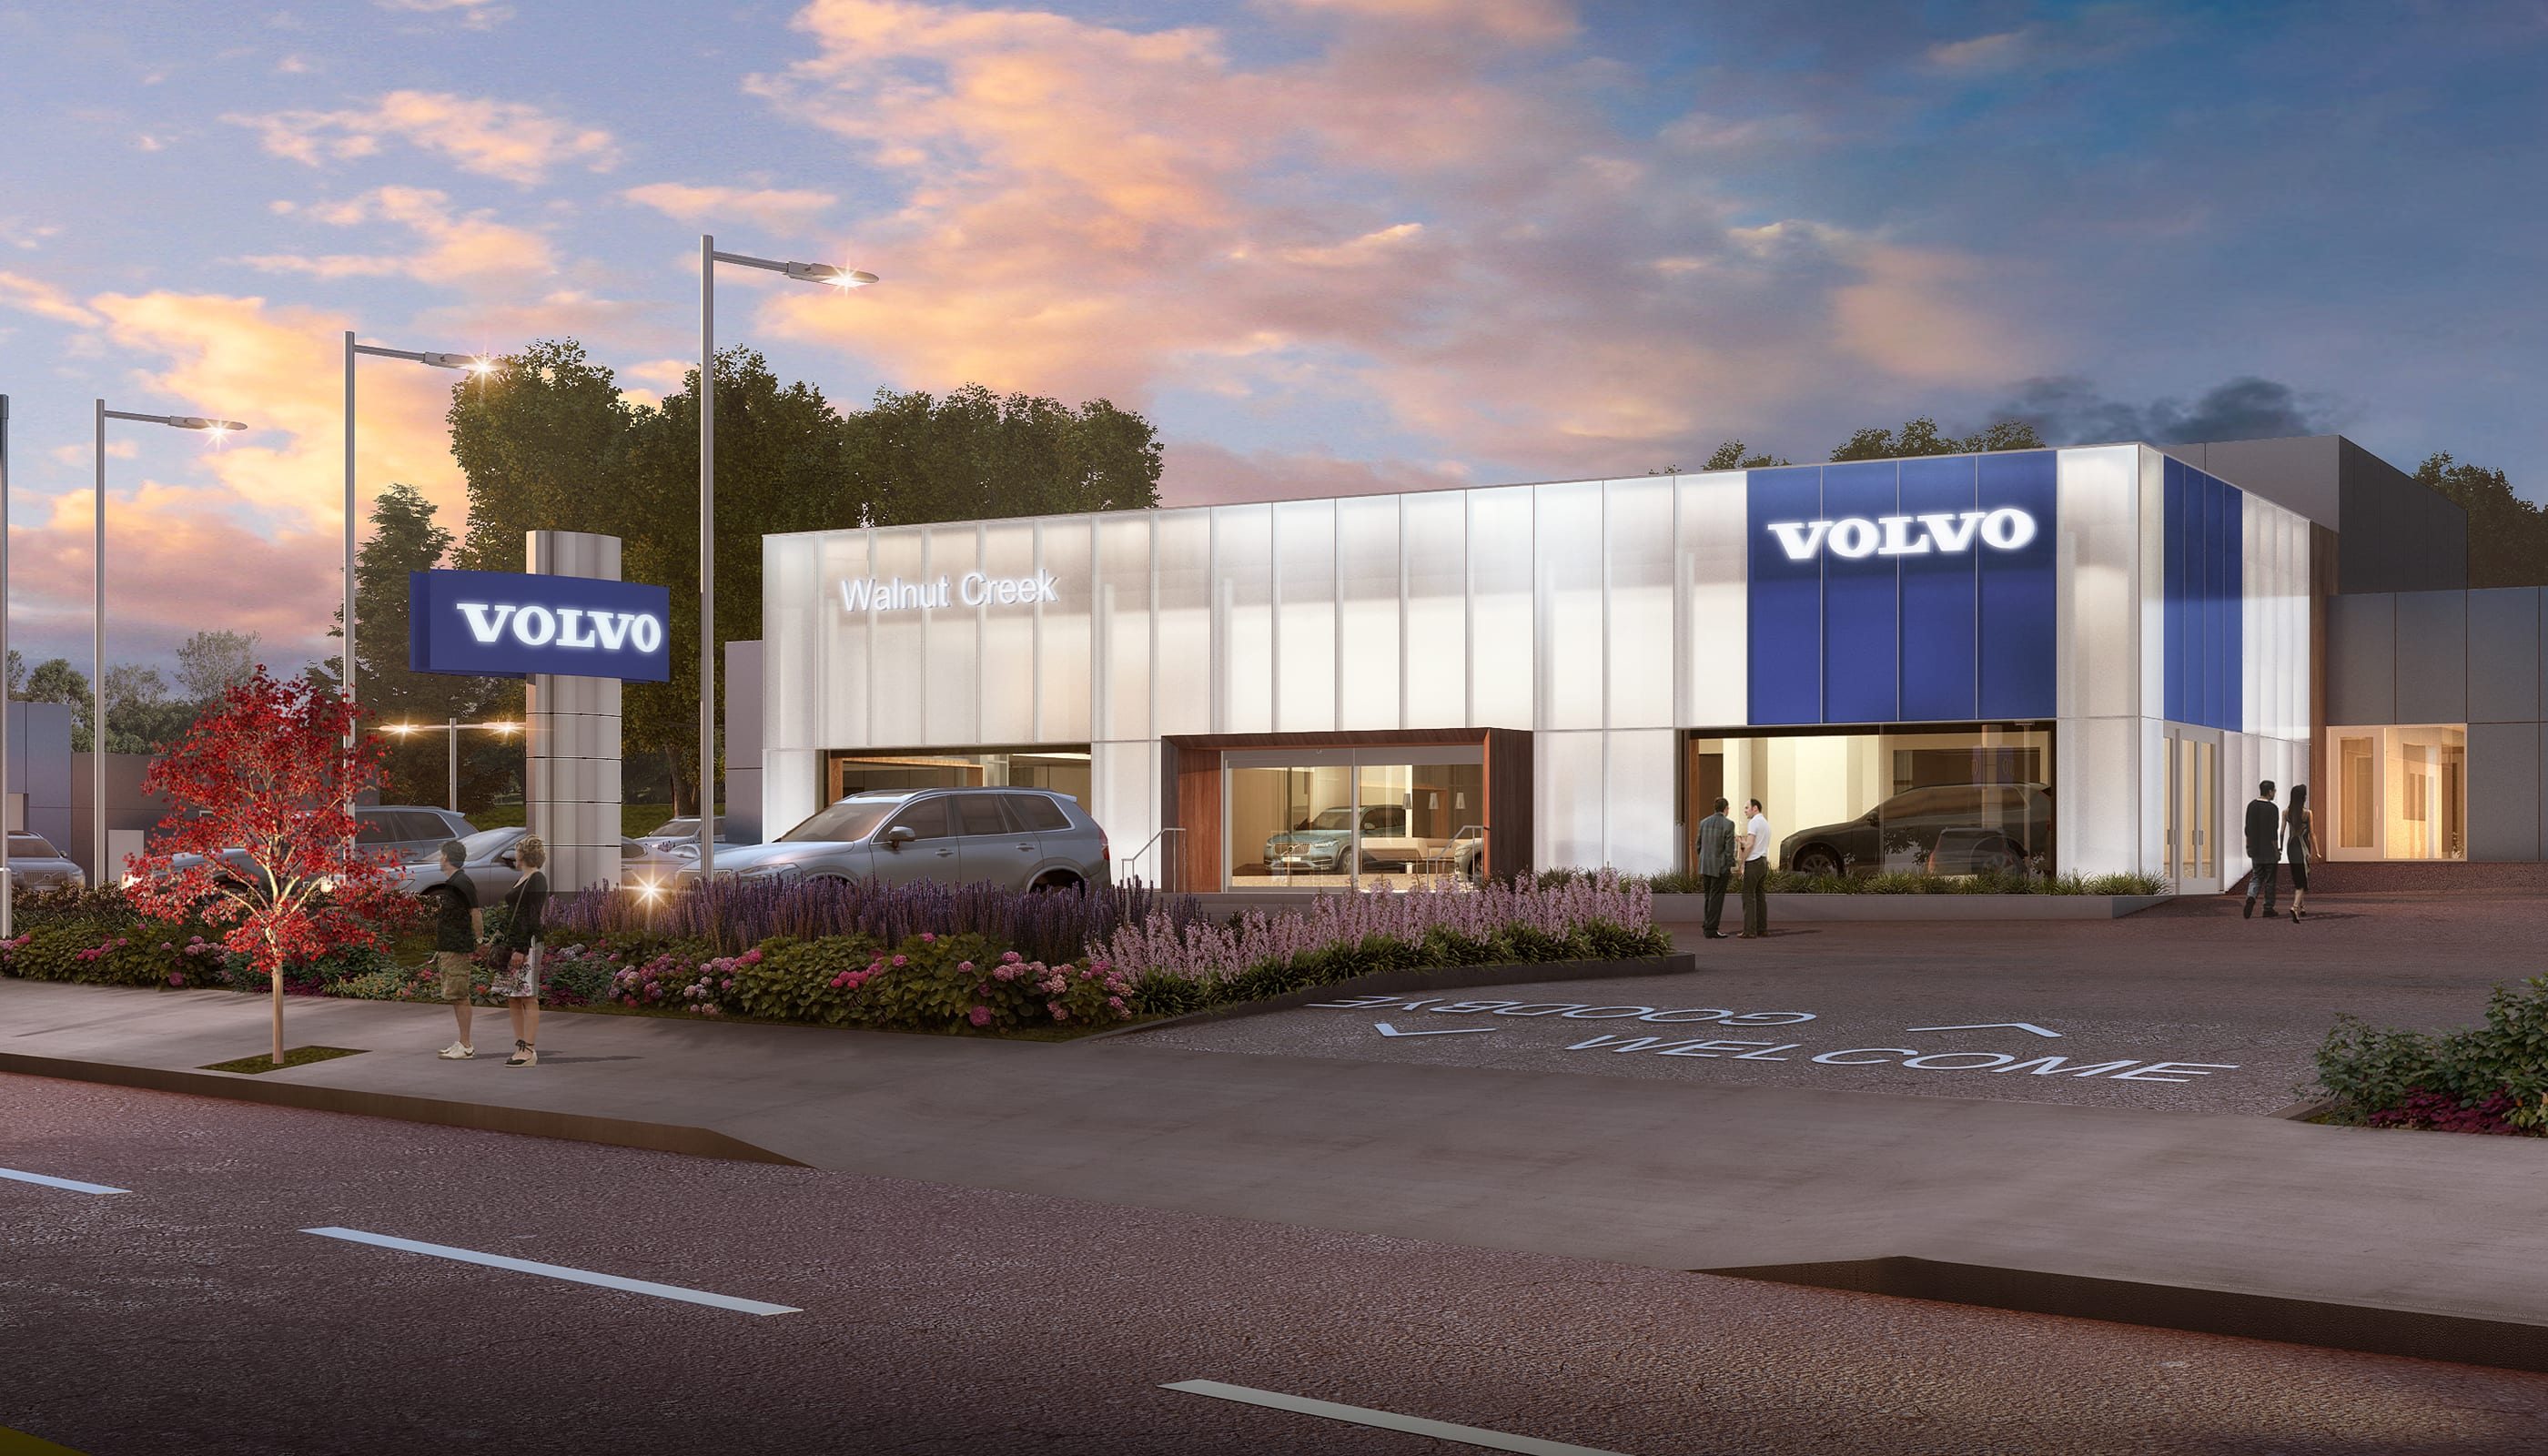 Volvo - Commercial Architecture